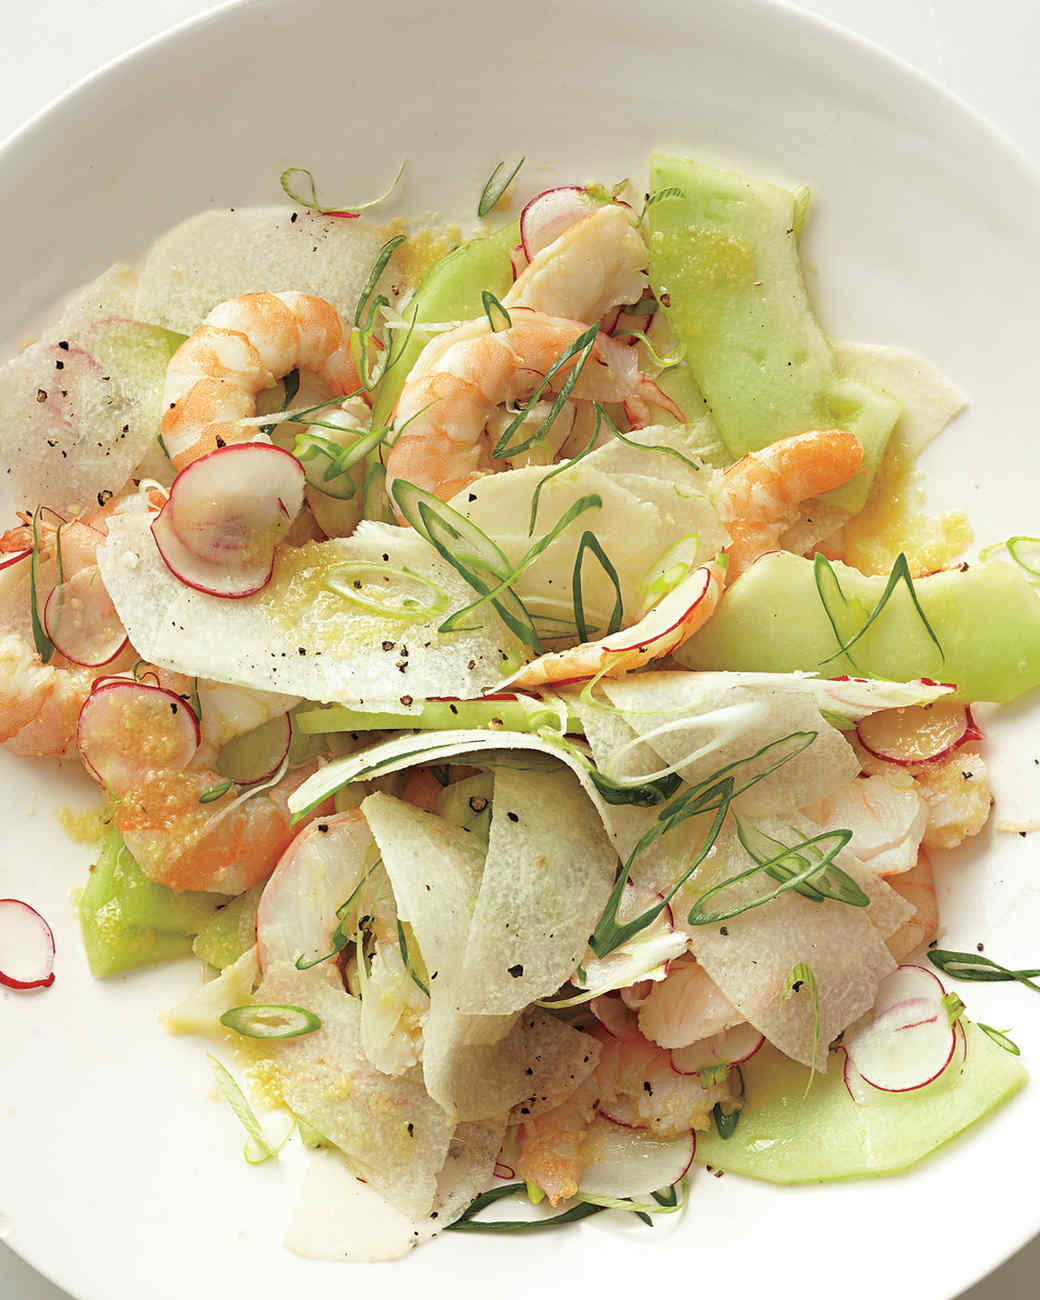 Poached Shrimp with Honeydew, Radishes, Jicama, and Scallions